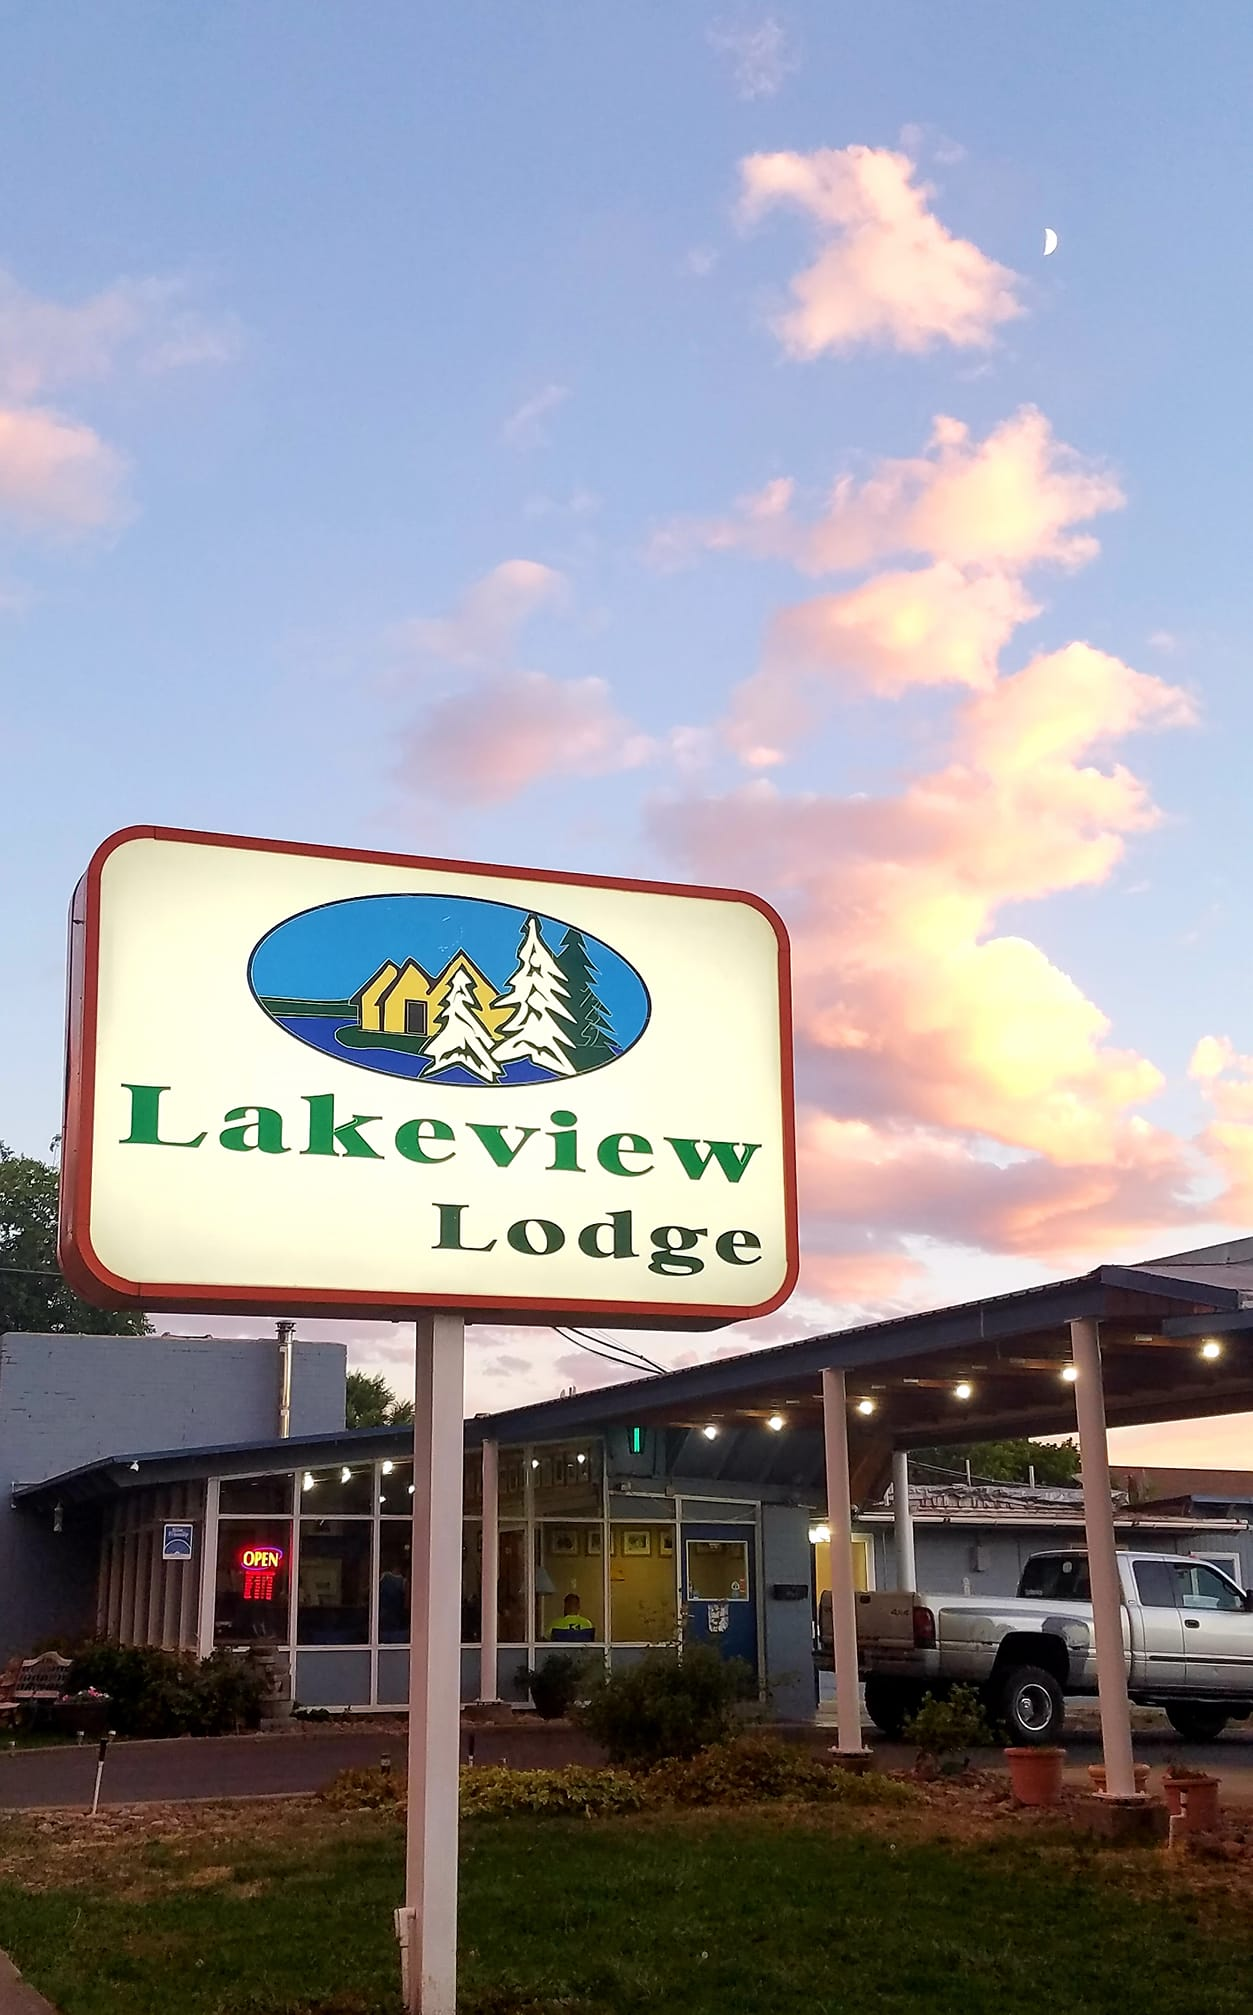 Lakeview Lodge Motel Sign.jpg